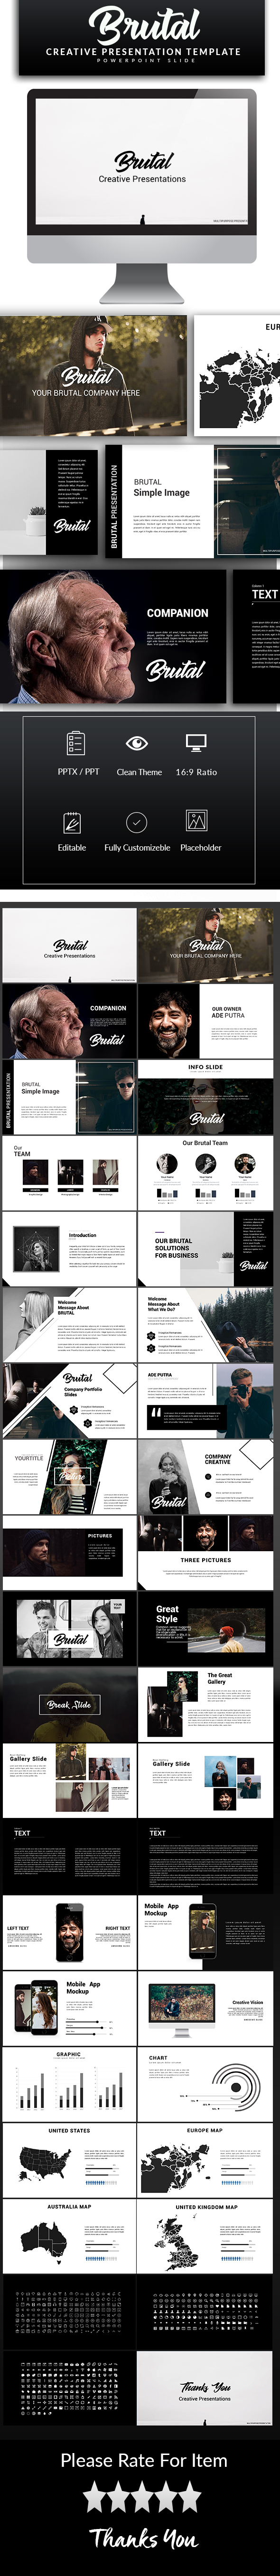 GraphicRiver Brutal Powerpoint Template 20790711